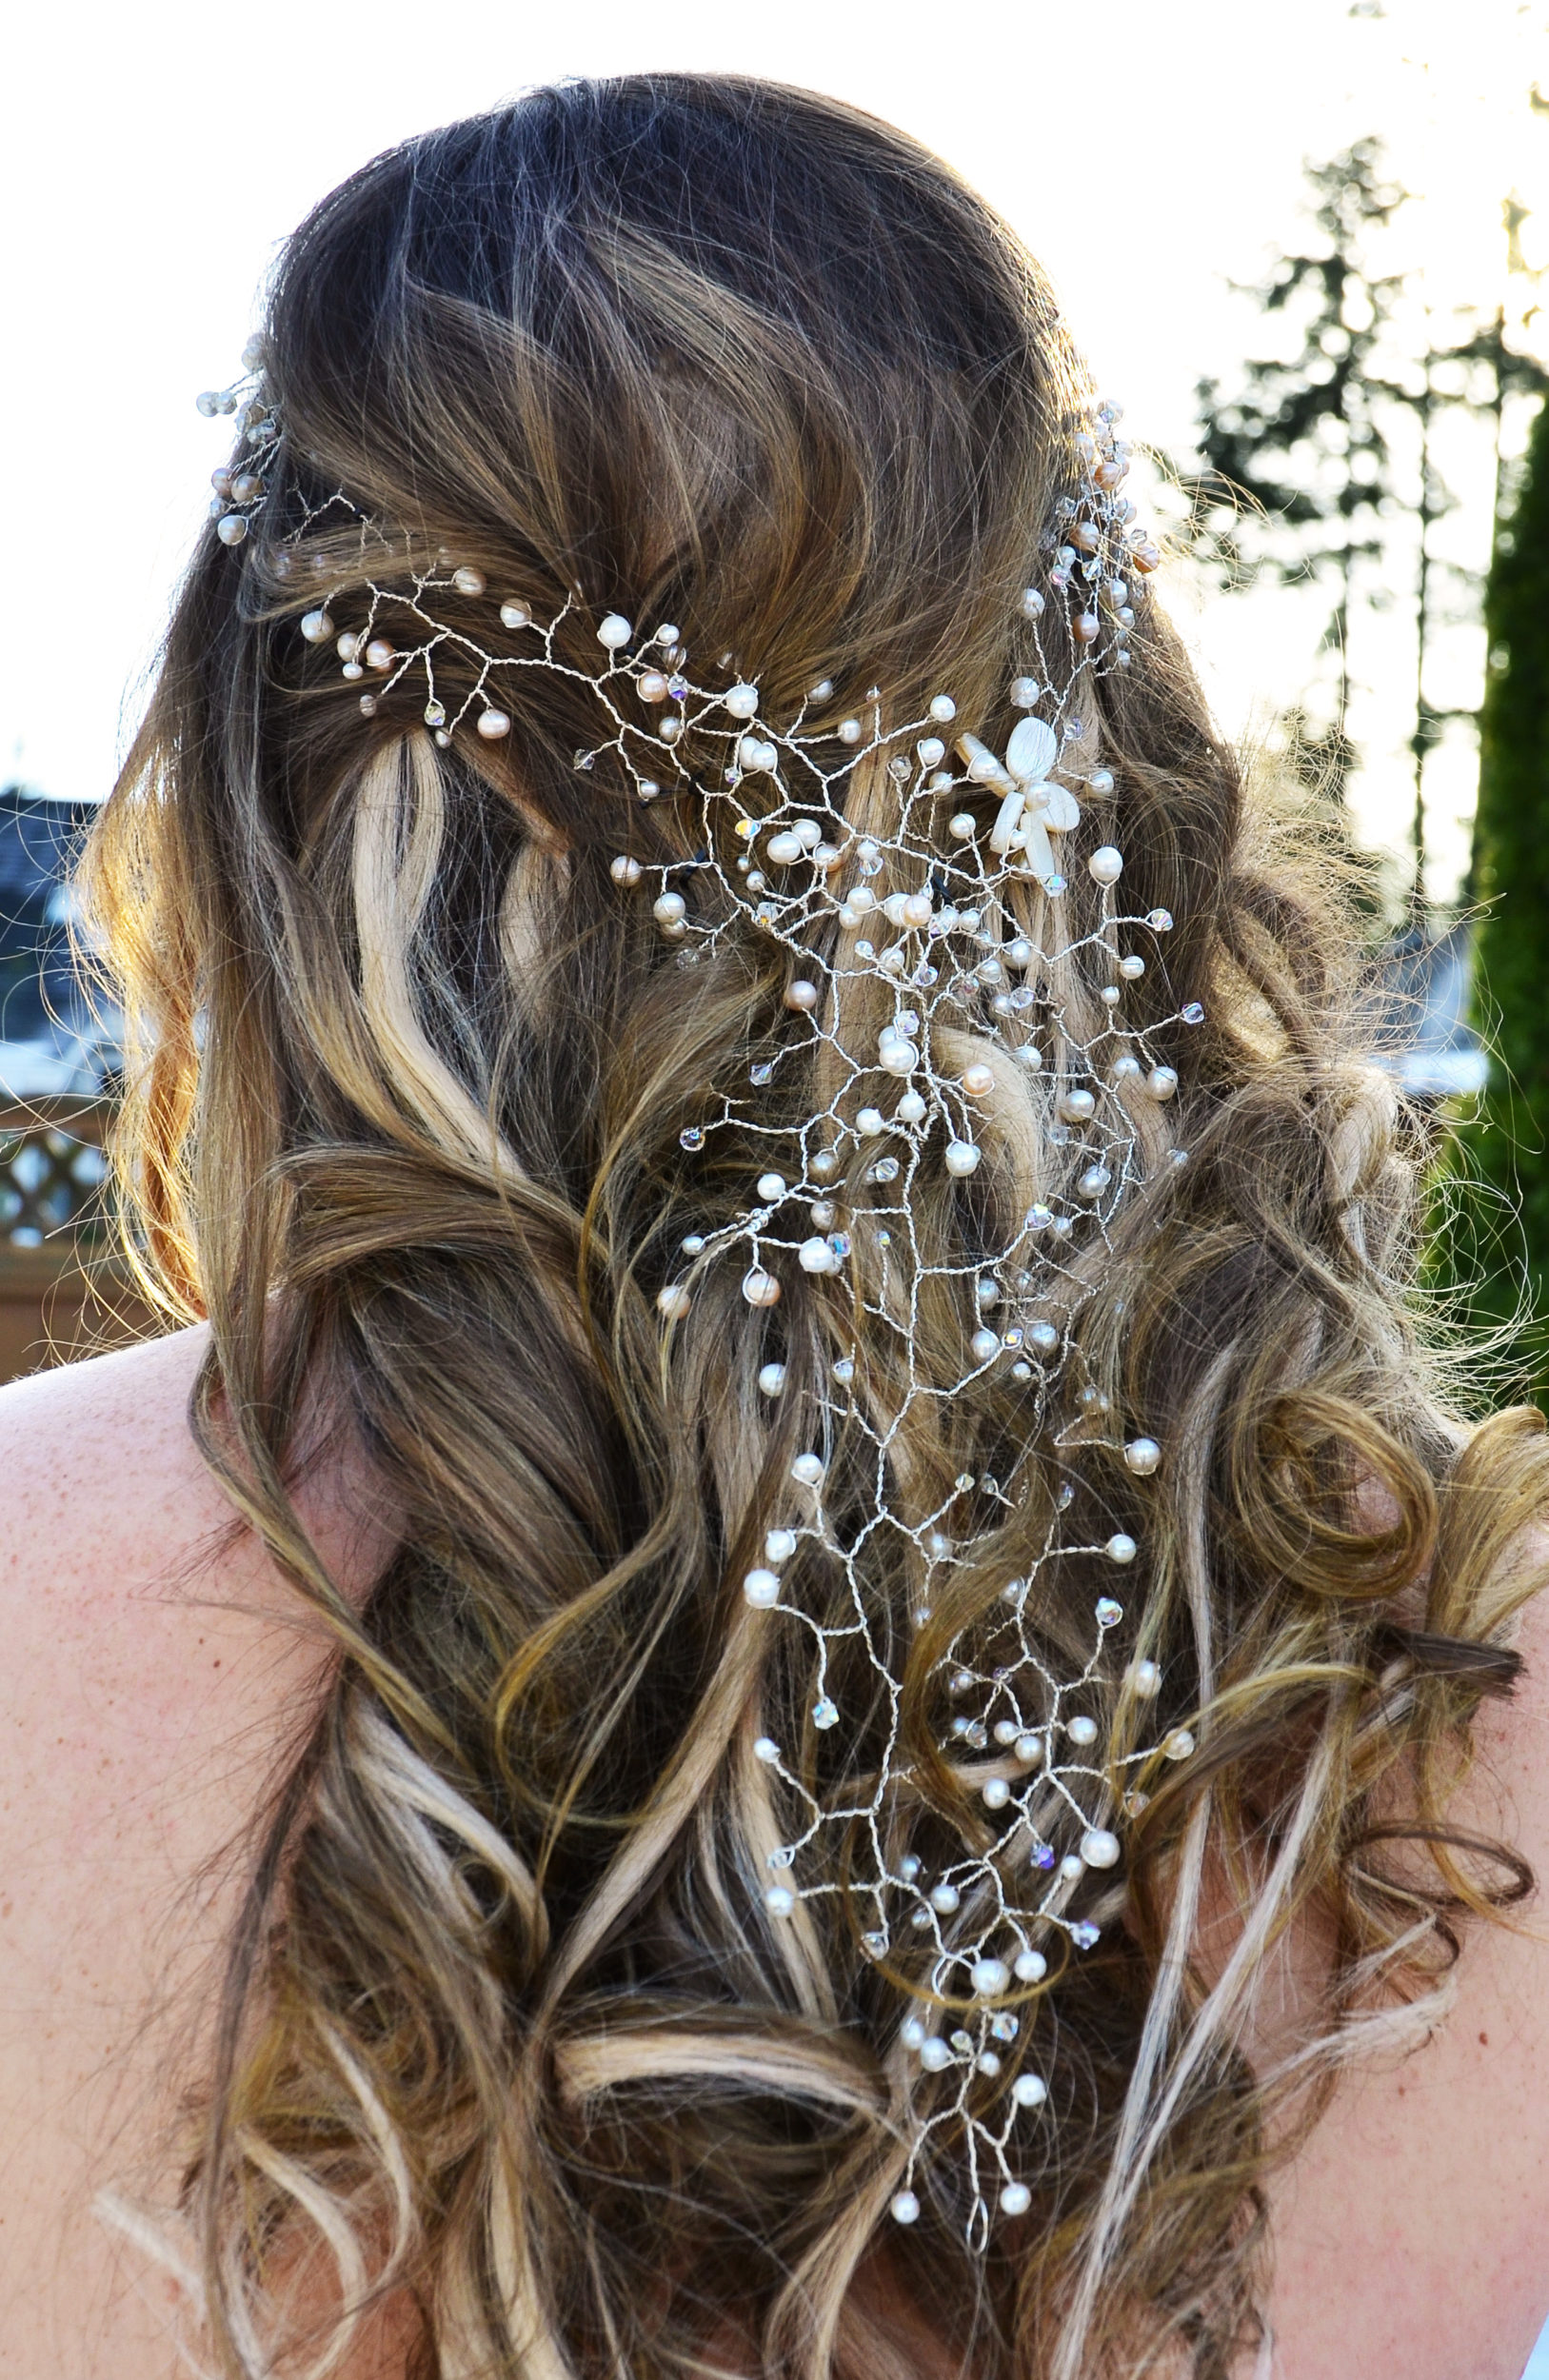 rose gold wedding hair accessories